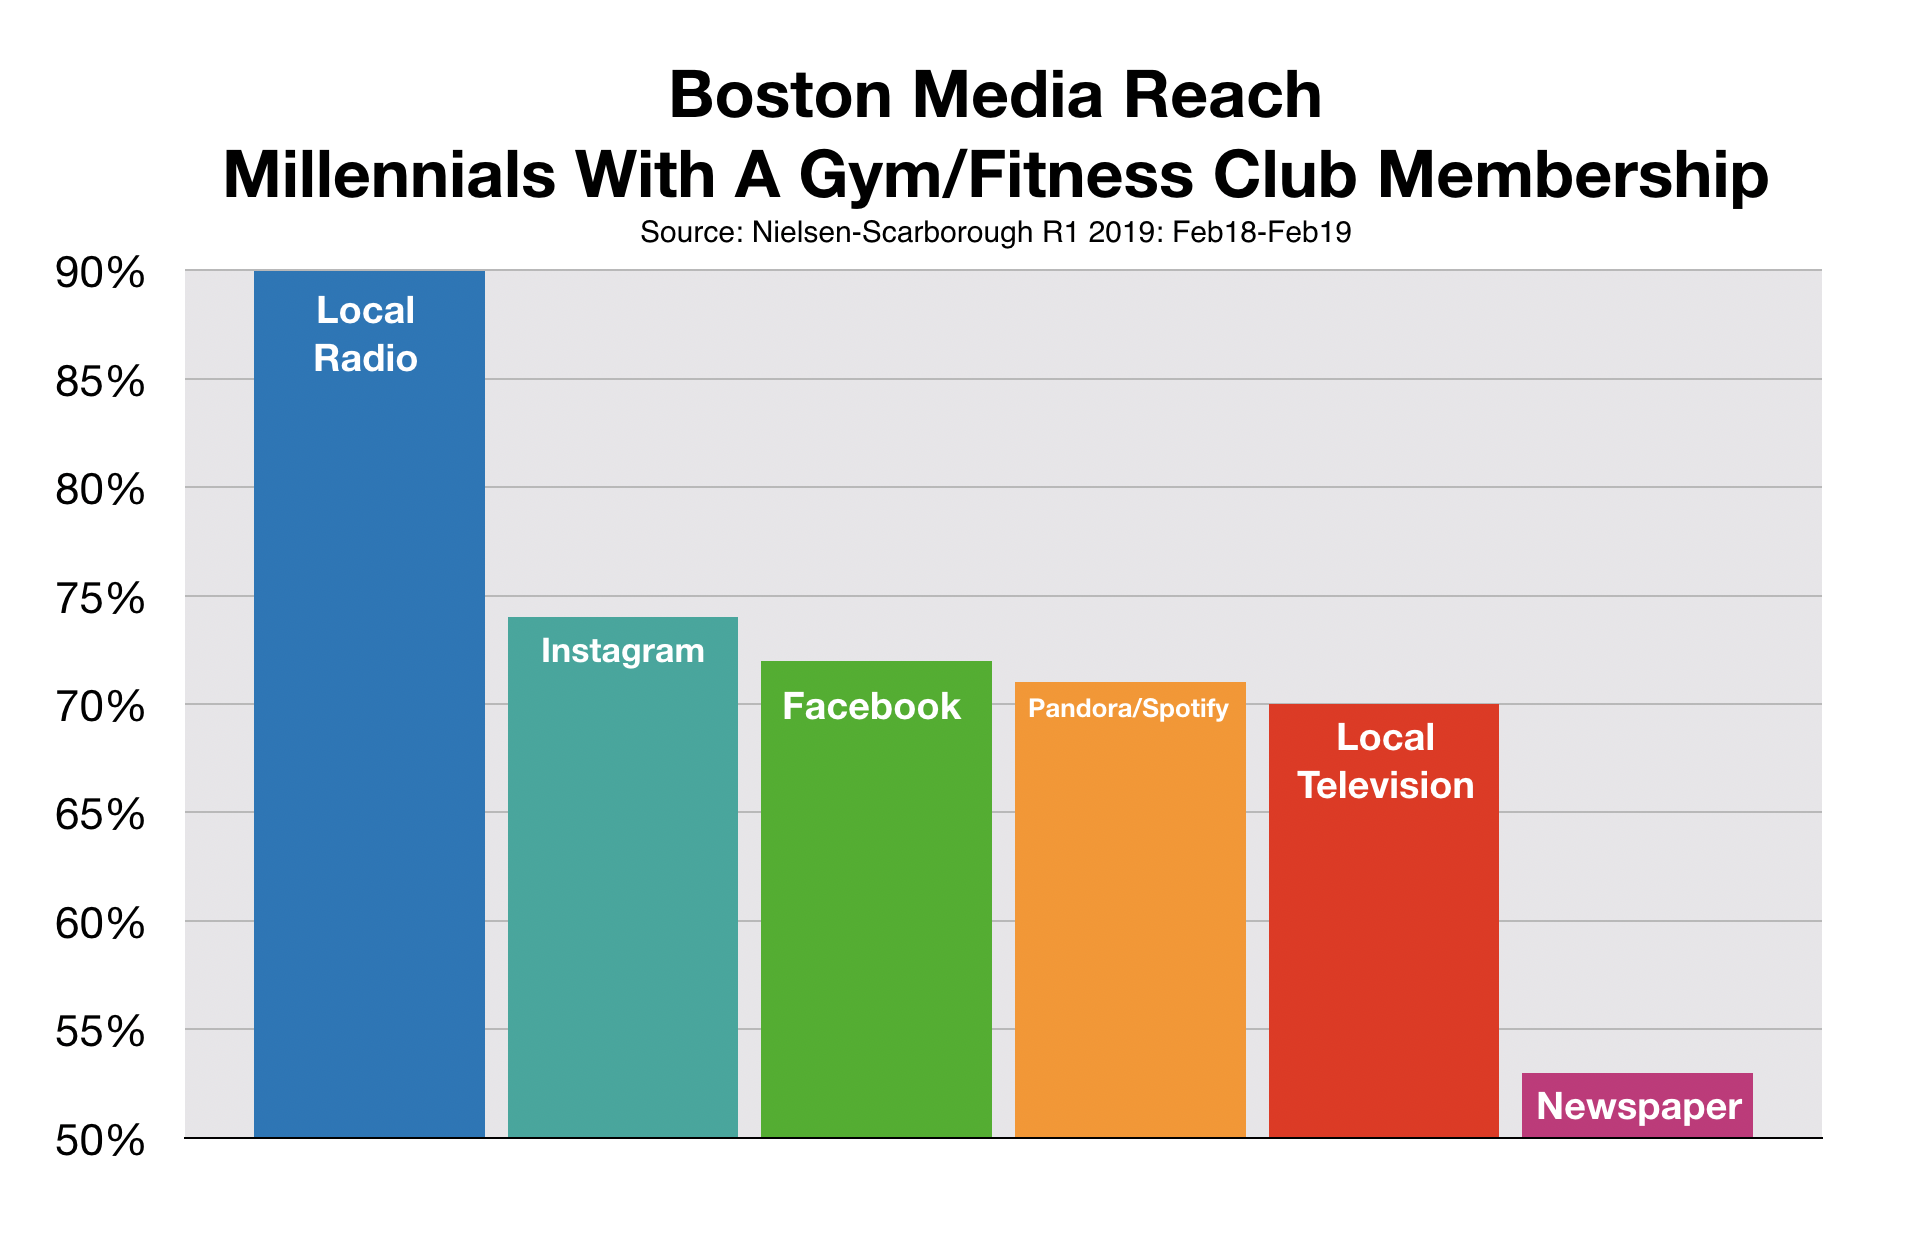 Advertise To Millennials in Boston Gym Memberships